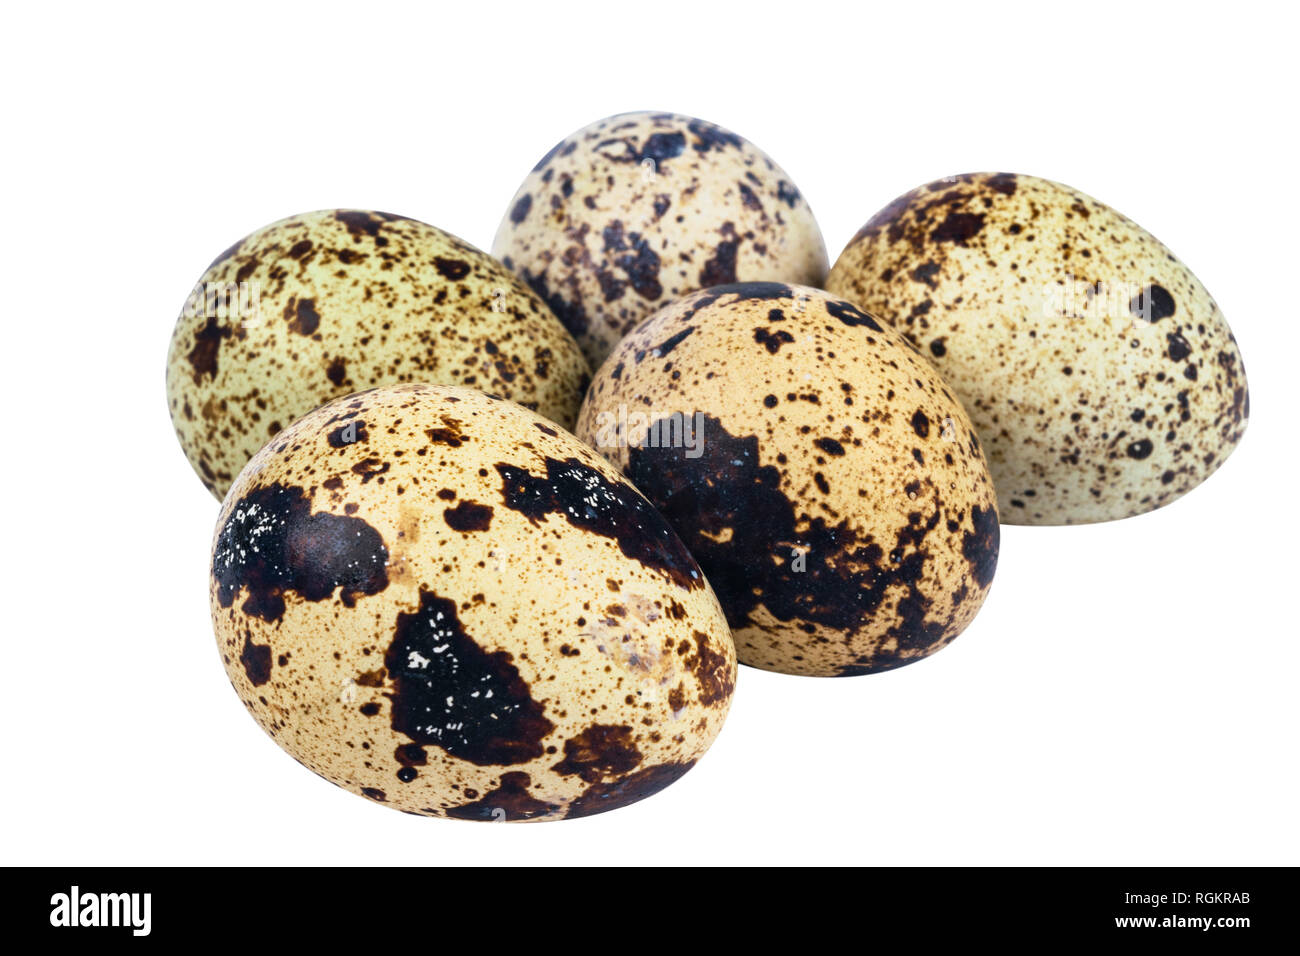 Isolated quail eggs. Big collection of quail eggs isolated on a white background. Healthy lifestyle concept - Stock Image